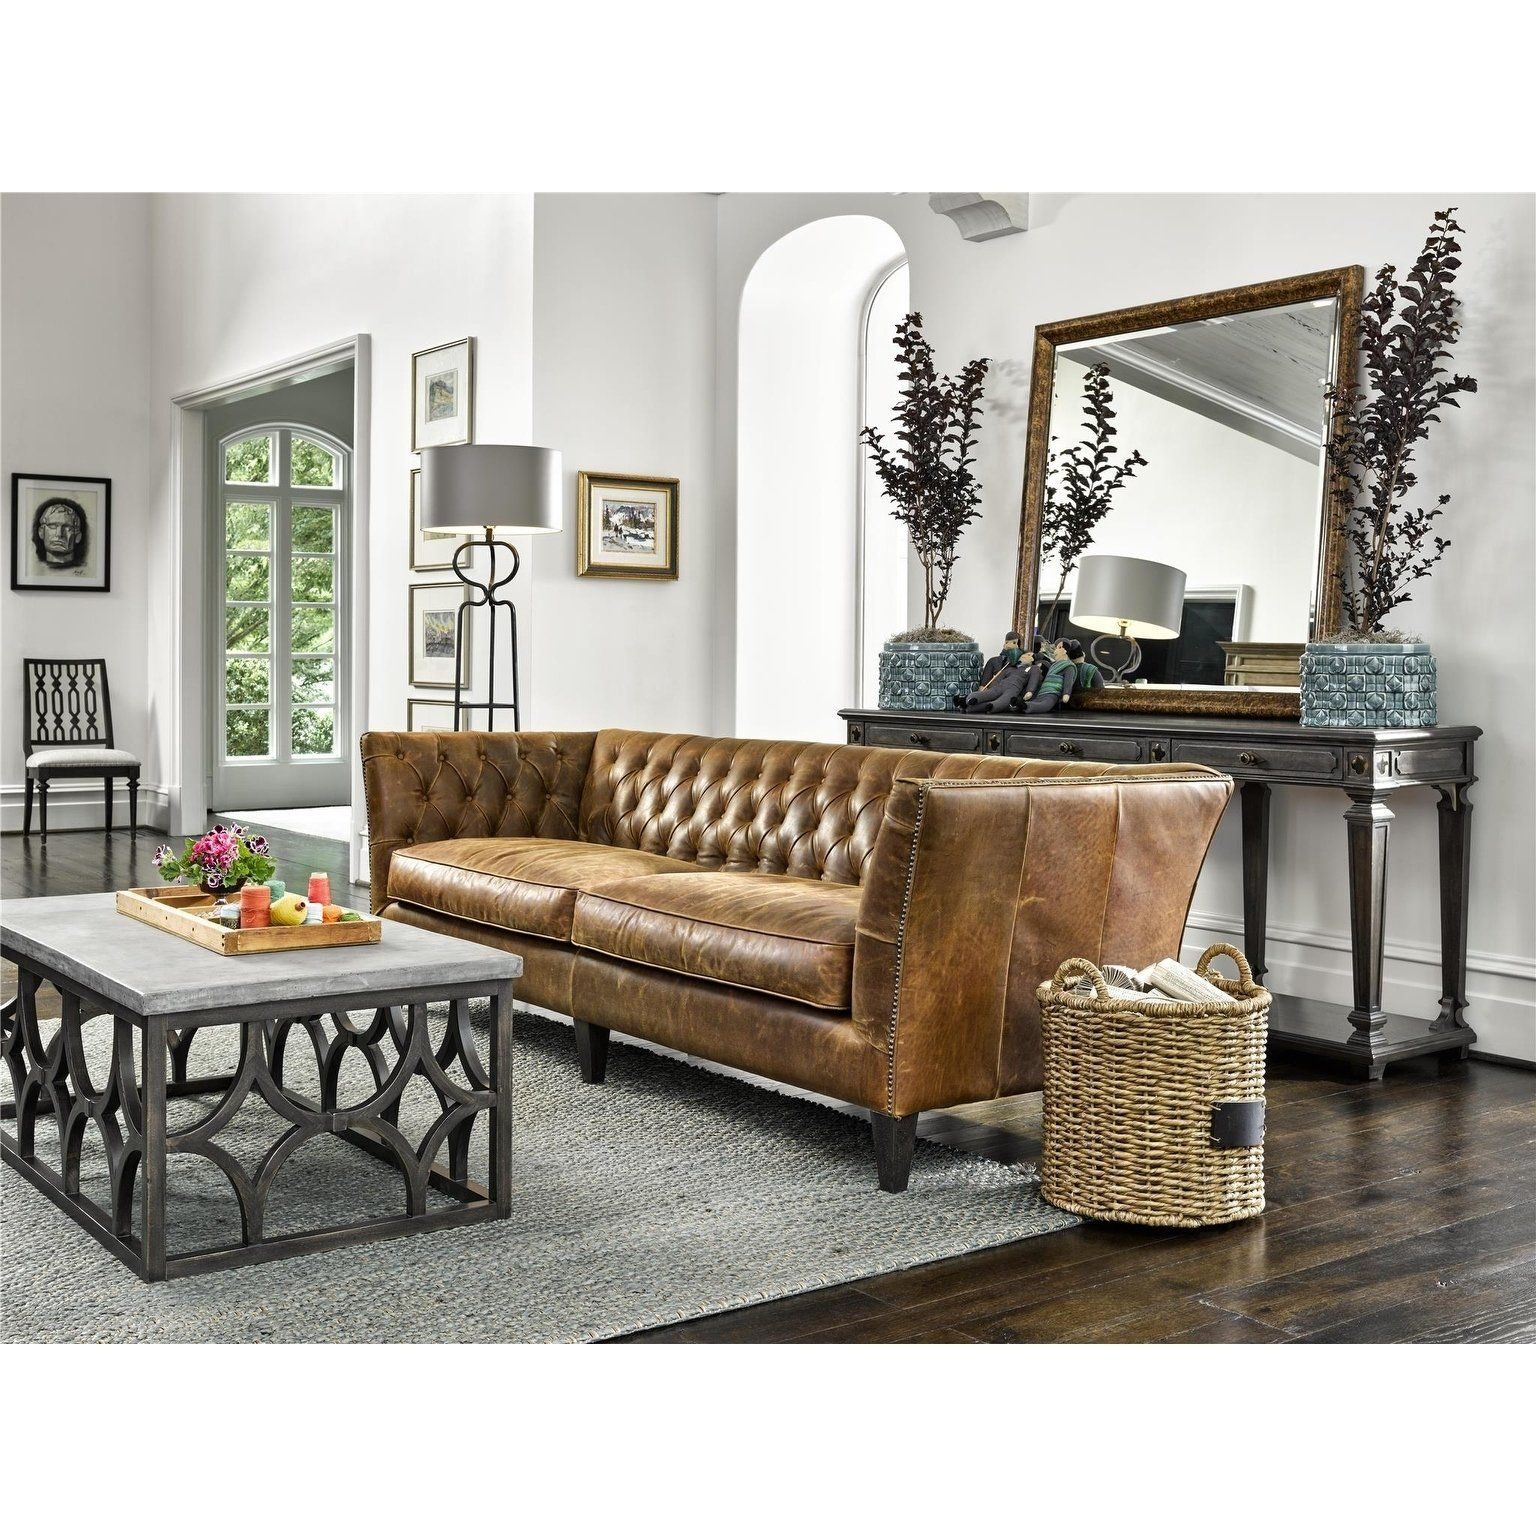 Everett Tufted Leather Settee In 2019: Universal Furniture Duncan Chestnut Leather Sofa, Brown